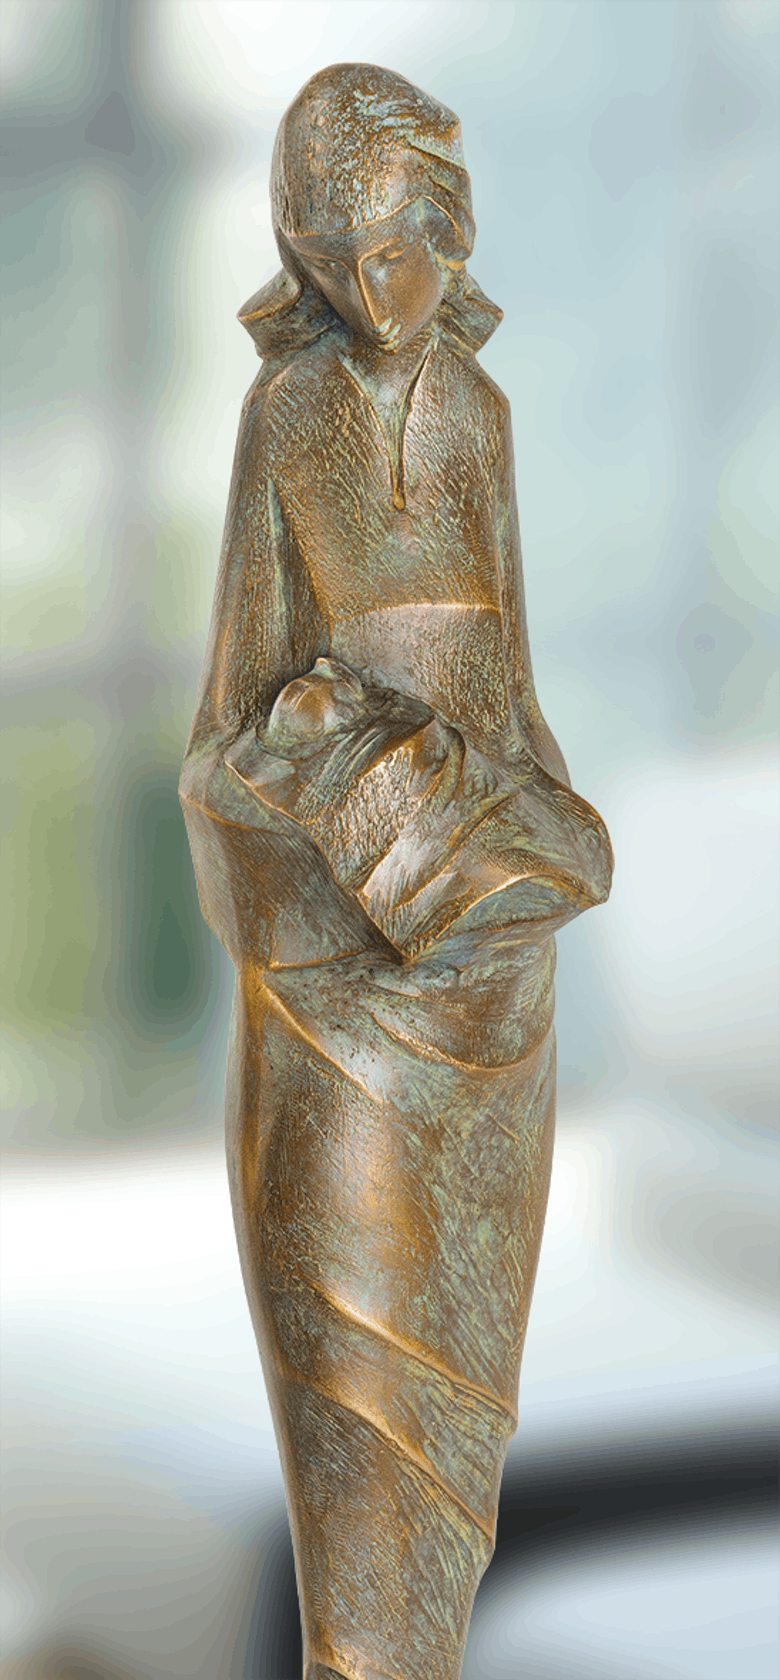 Bronzeskulptur-Mutter-mit-Kind